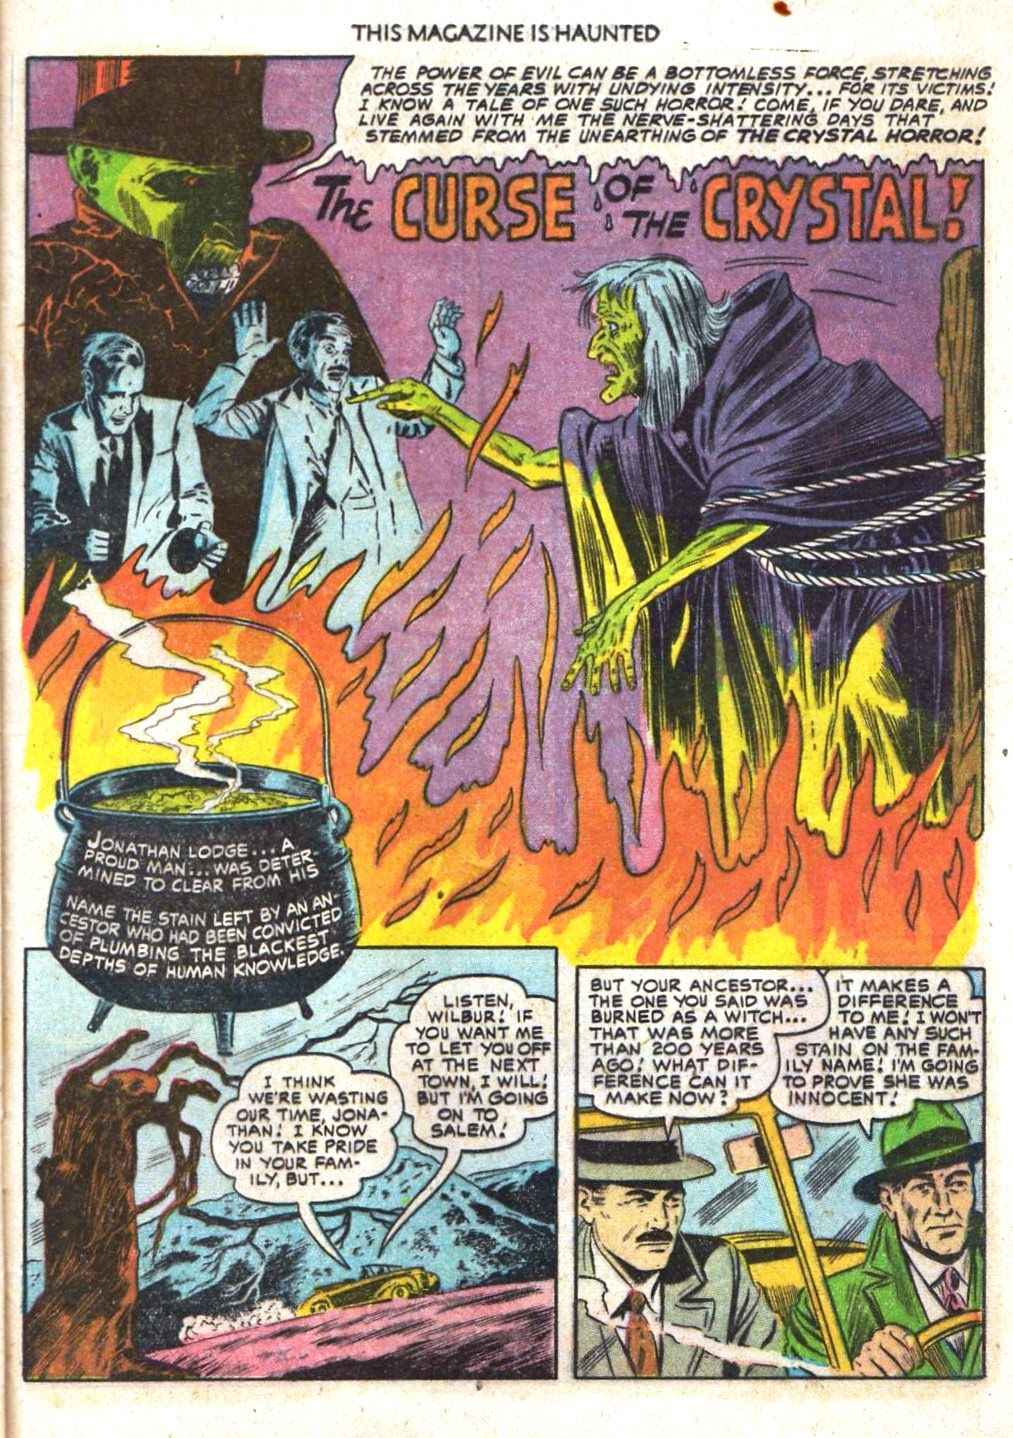 Read online This Magazine Is Haunted comic -  Issue #6 - 25